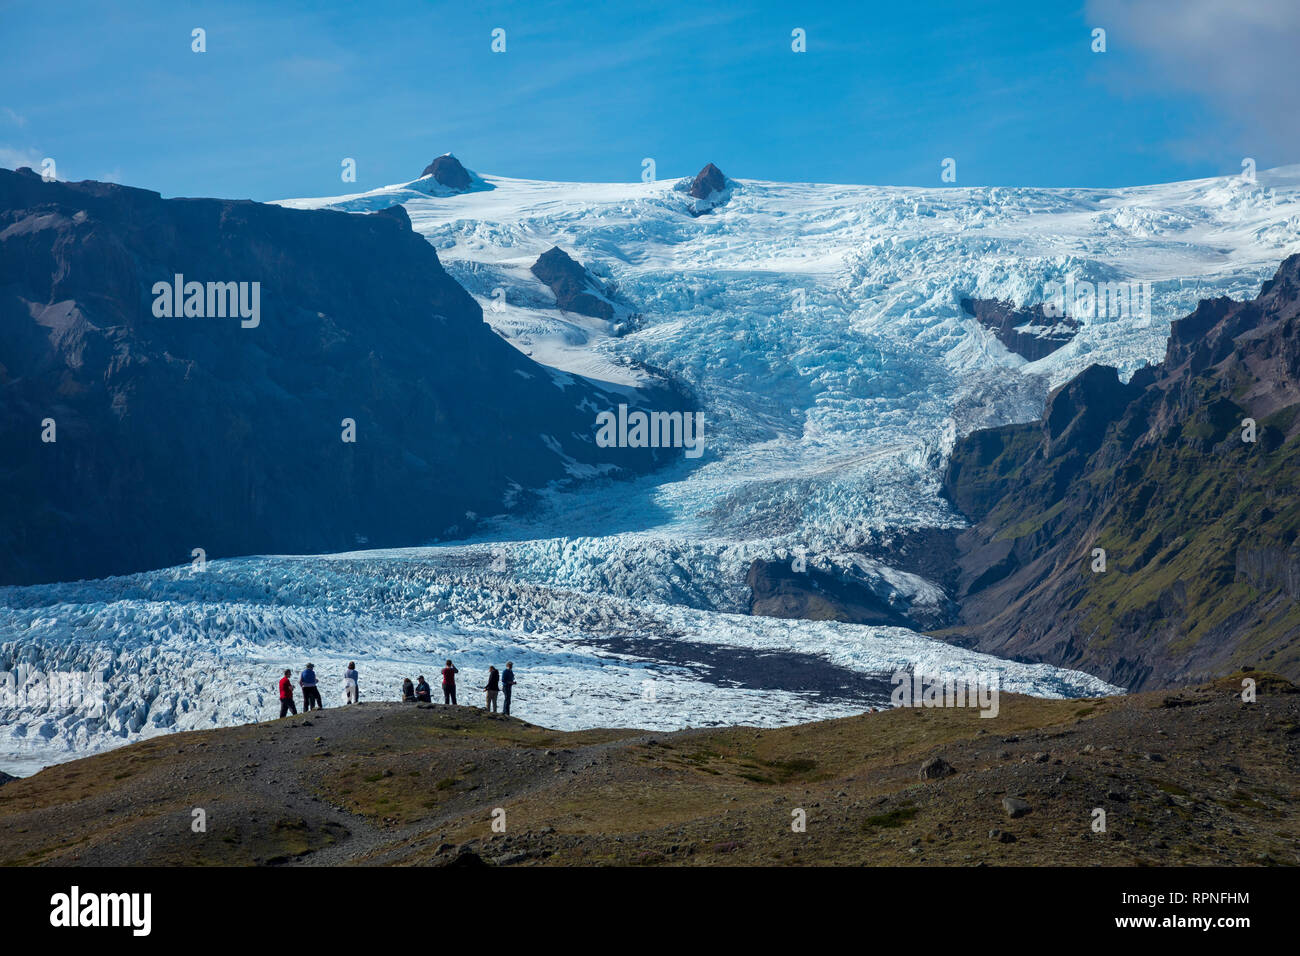 People dwarfed beneath the ice fall of Kviarjokulll glacier. Vatnajokull ice cap, Sudhurland, south east Iceland. - Stock Image